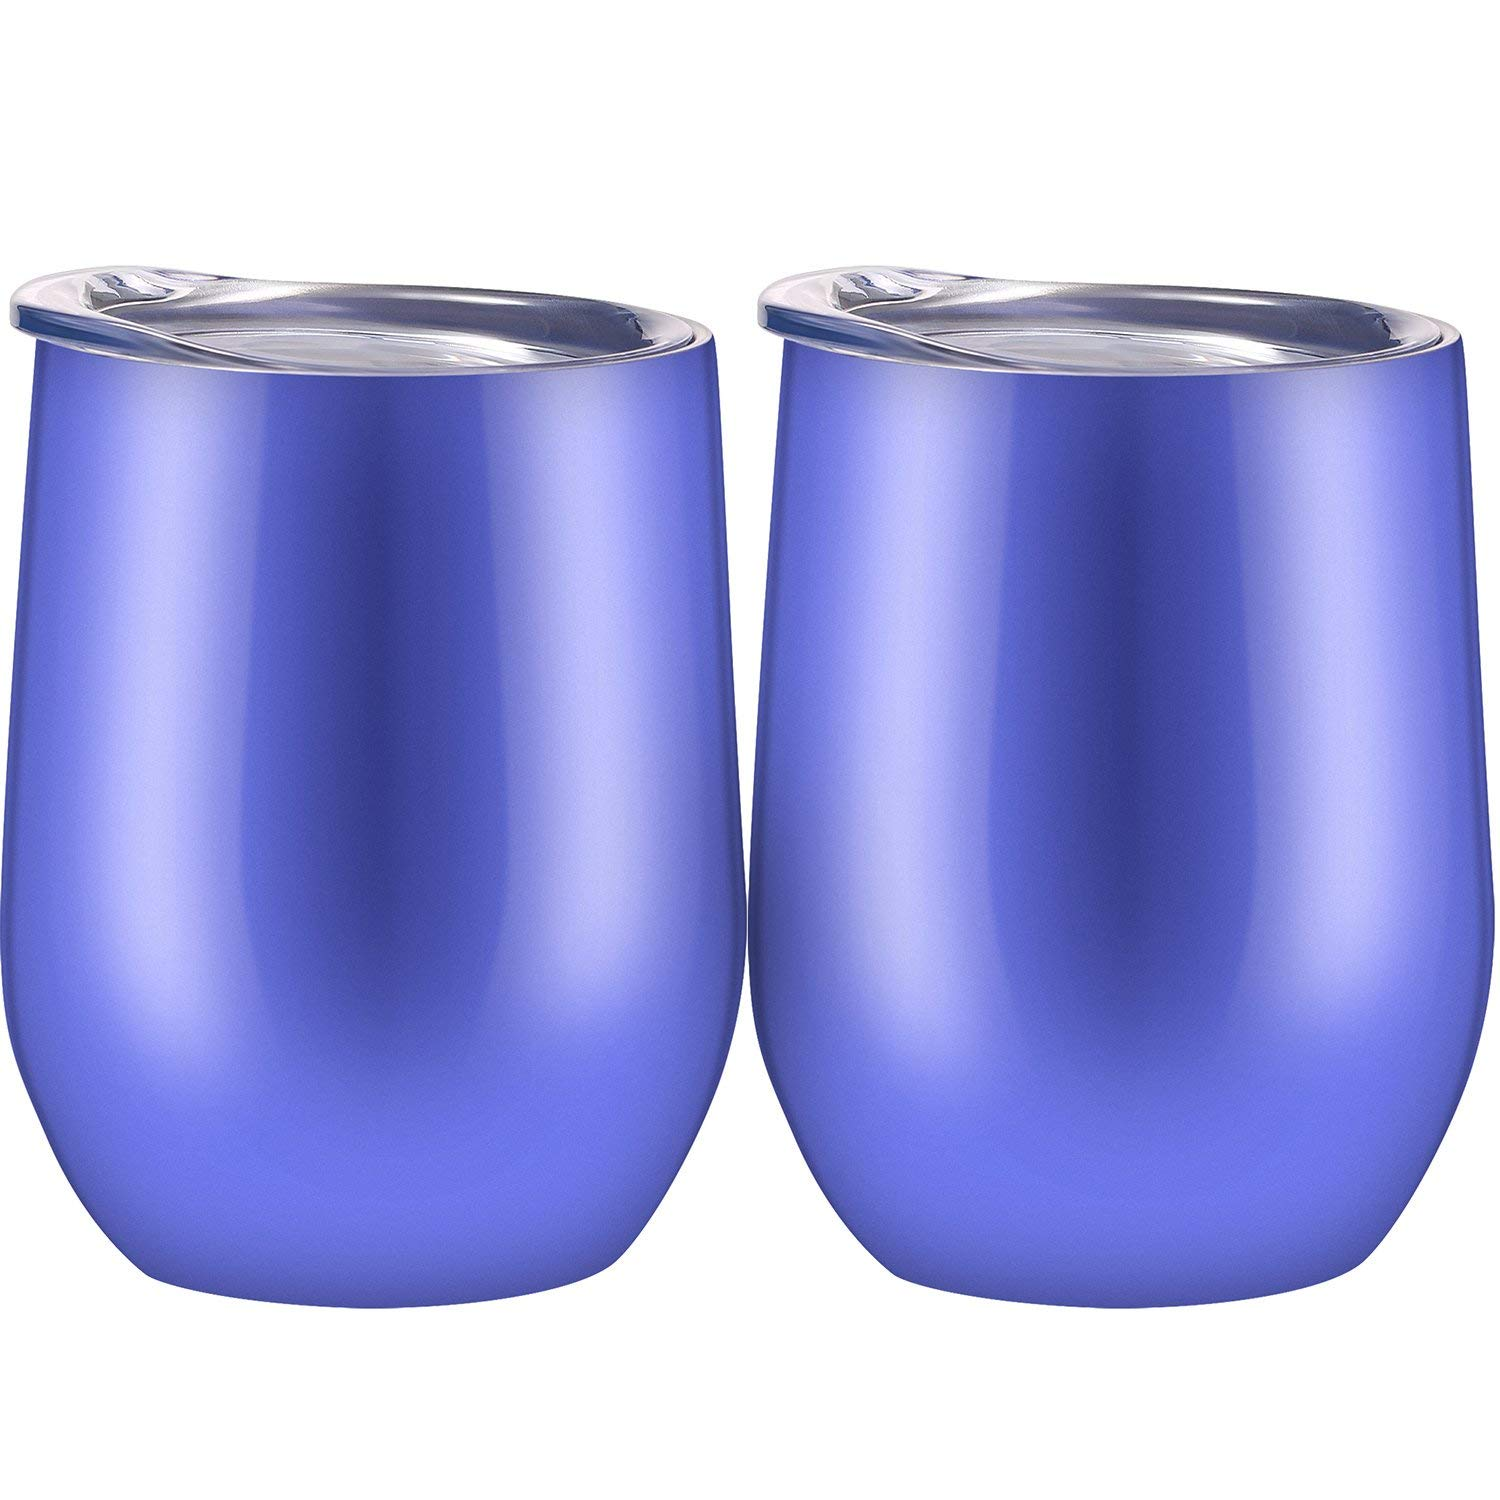 f7239f8c1fb Skylety 12 oz Double-insulated Stemless Glass, Stainless Steel Tumbler Cup  with Lids for